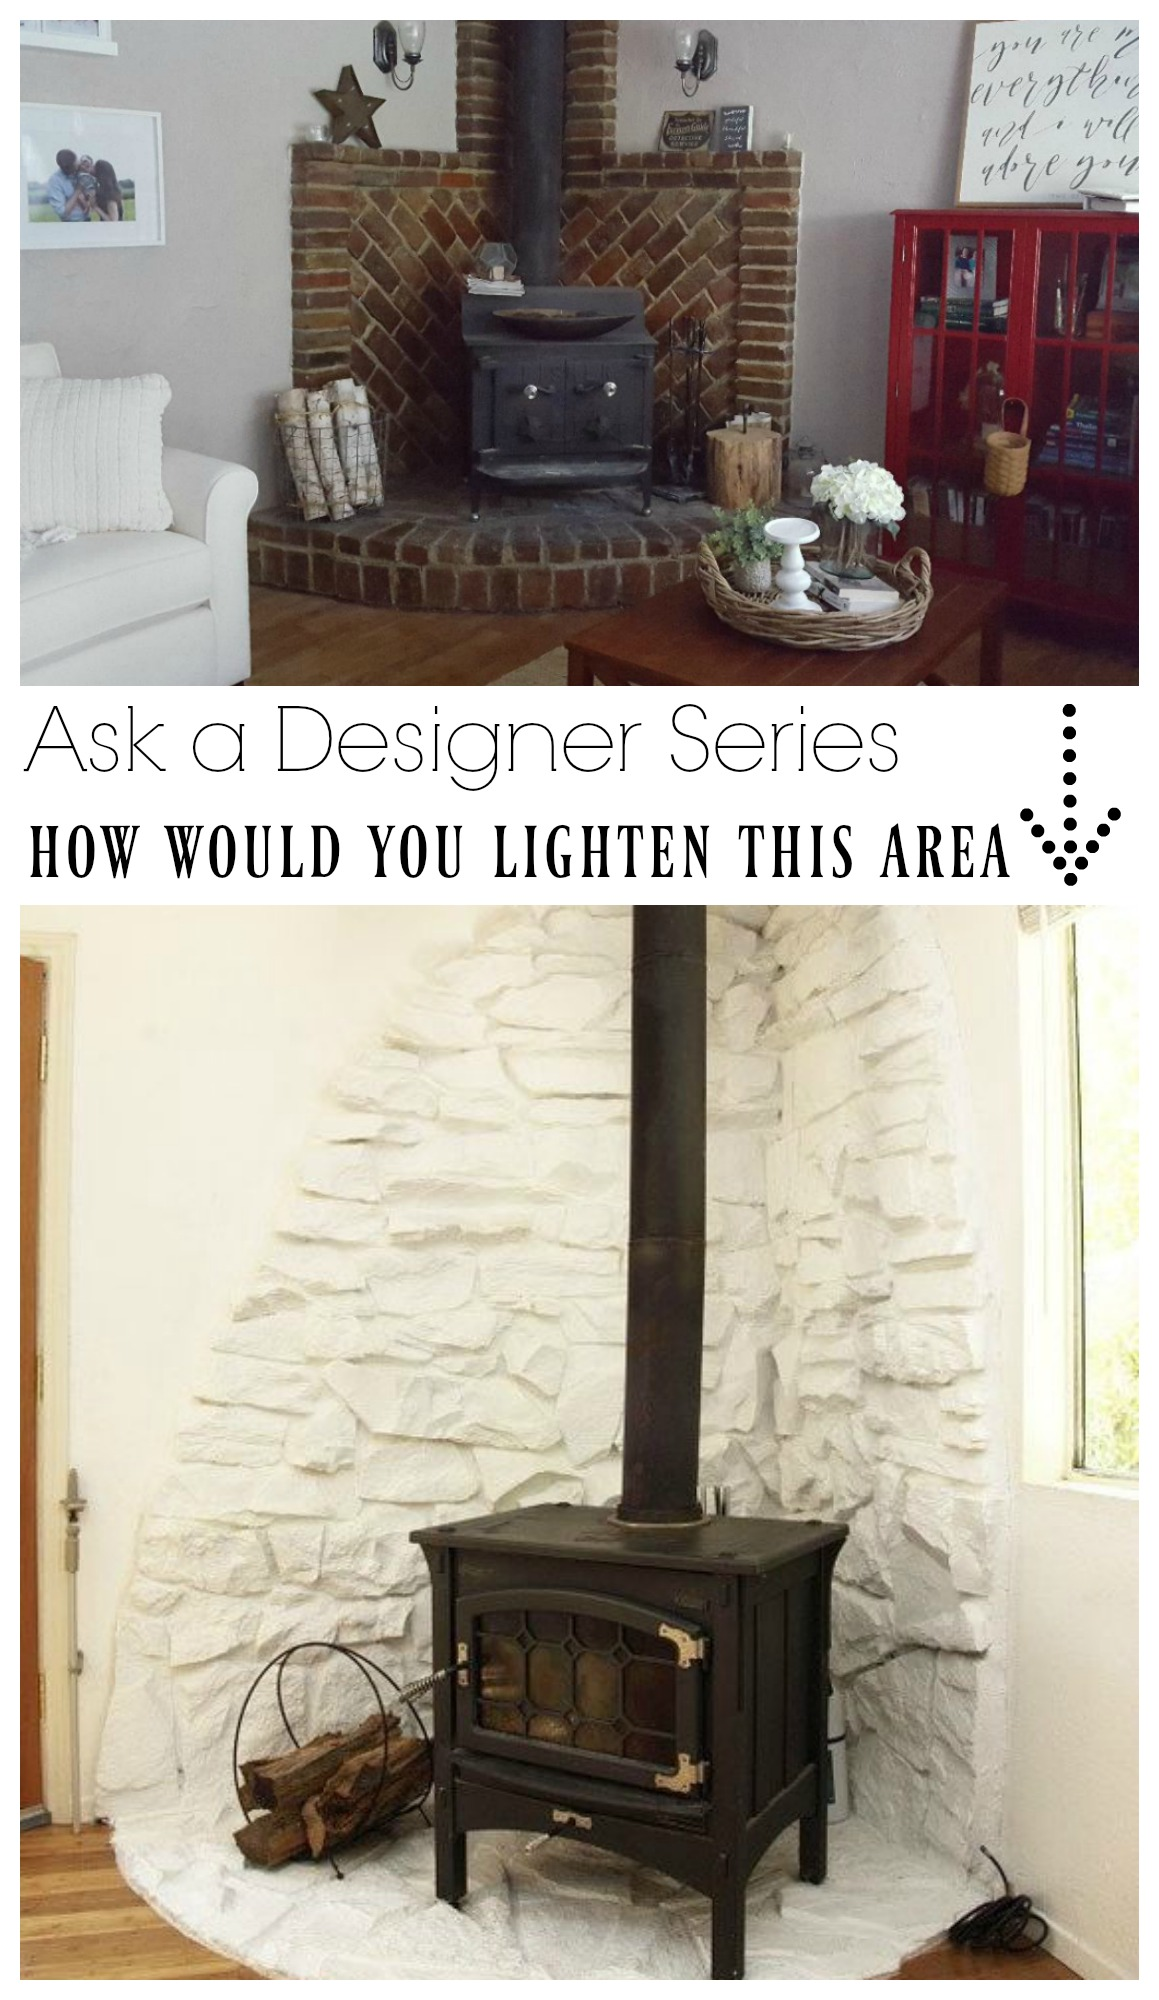 Ask a Designer Series- How would you lighten this fireplace/